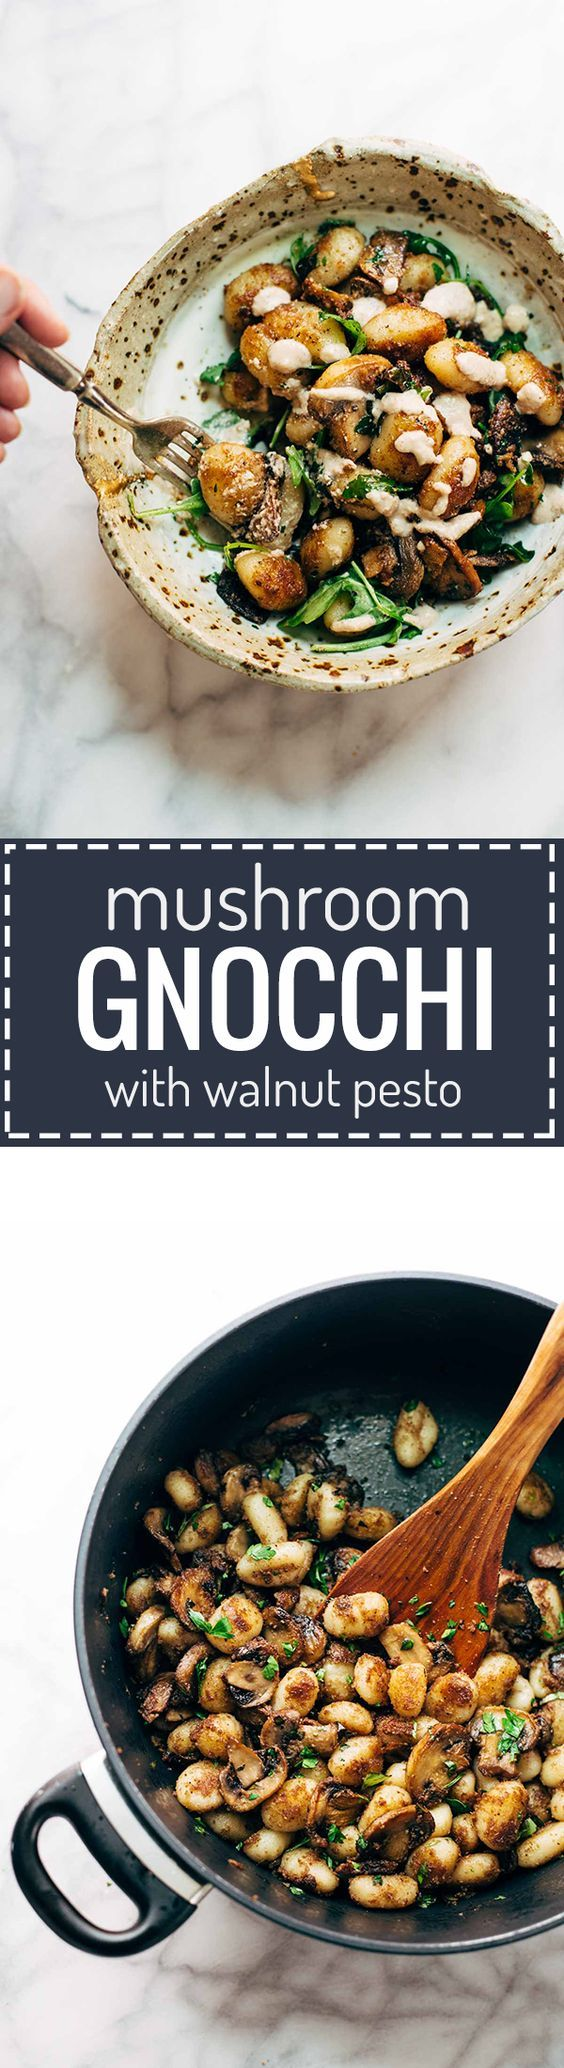 Mushroom Gnocchi with Walnut Pesto and Arugula - a rustic vegetarian recipe made with easy ingredients like Parmesan cheese, garlic, olive oil, arugula, mushrooms, and DeLallo potato gnocchi. Comes together in 30 minutes or less! | pinchofyum.com